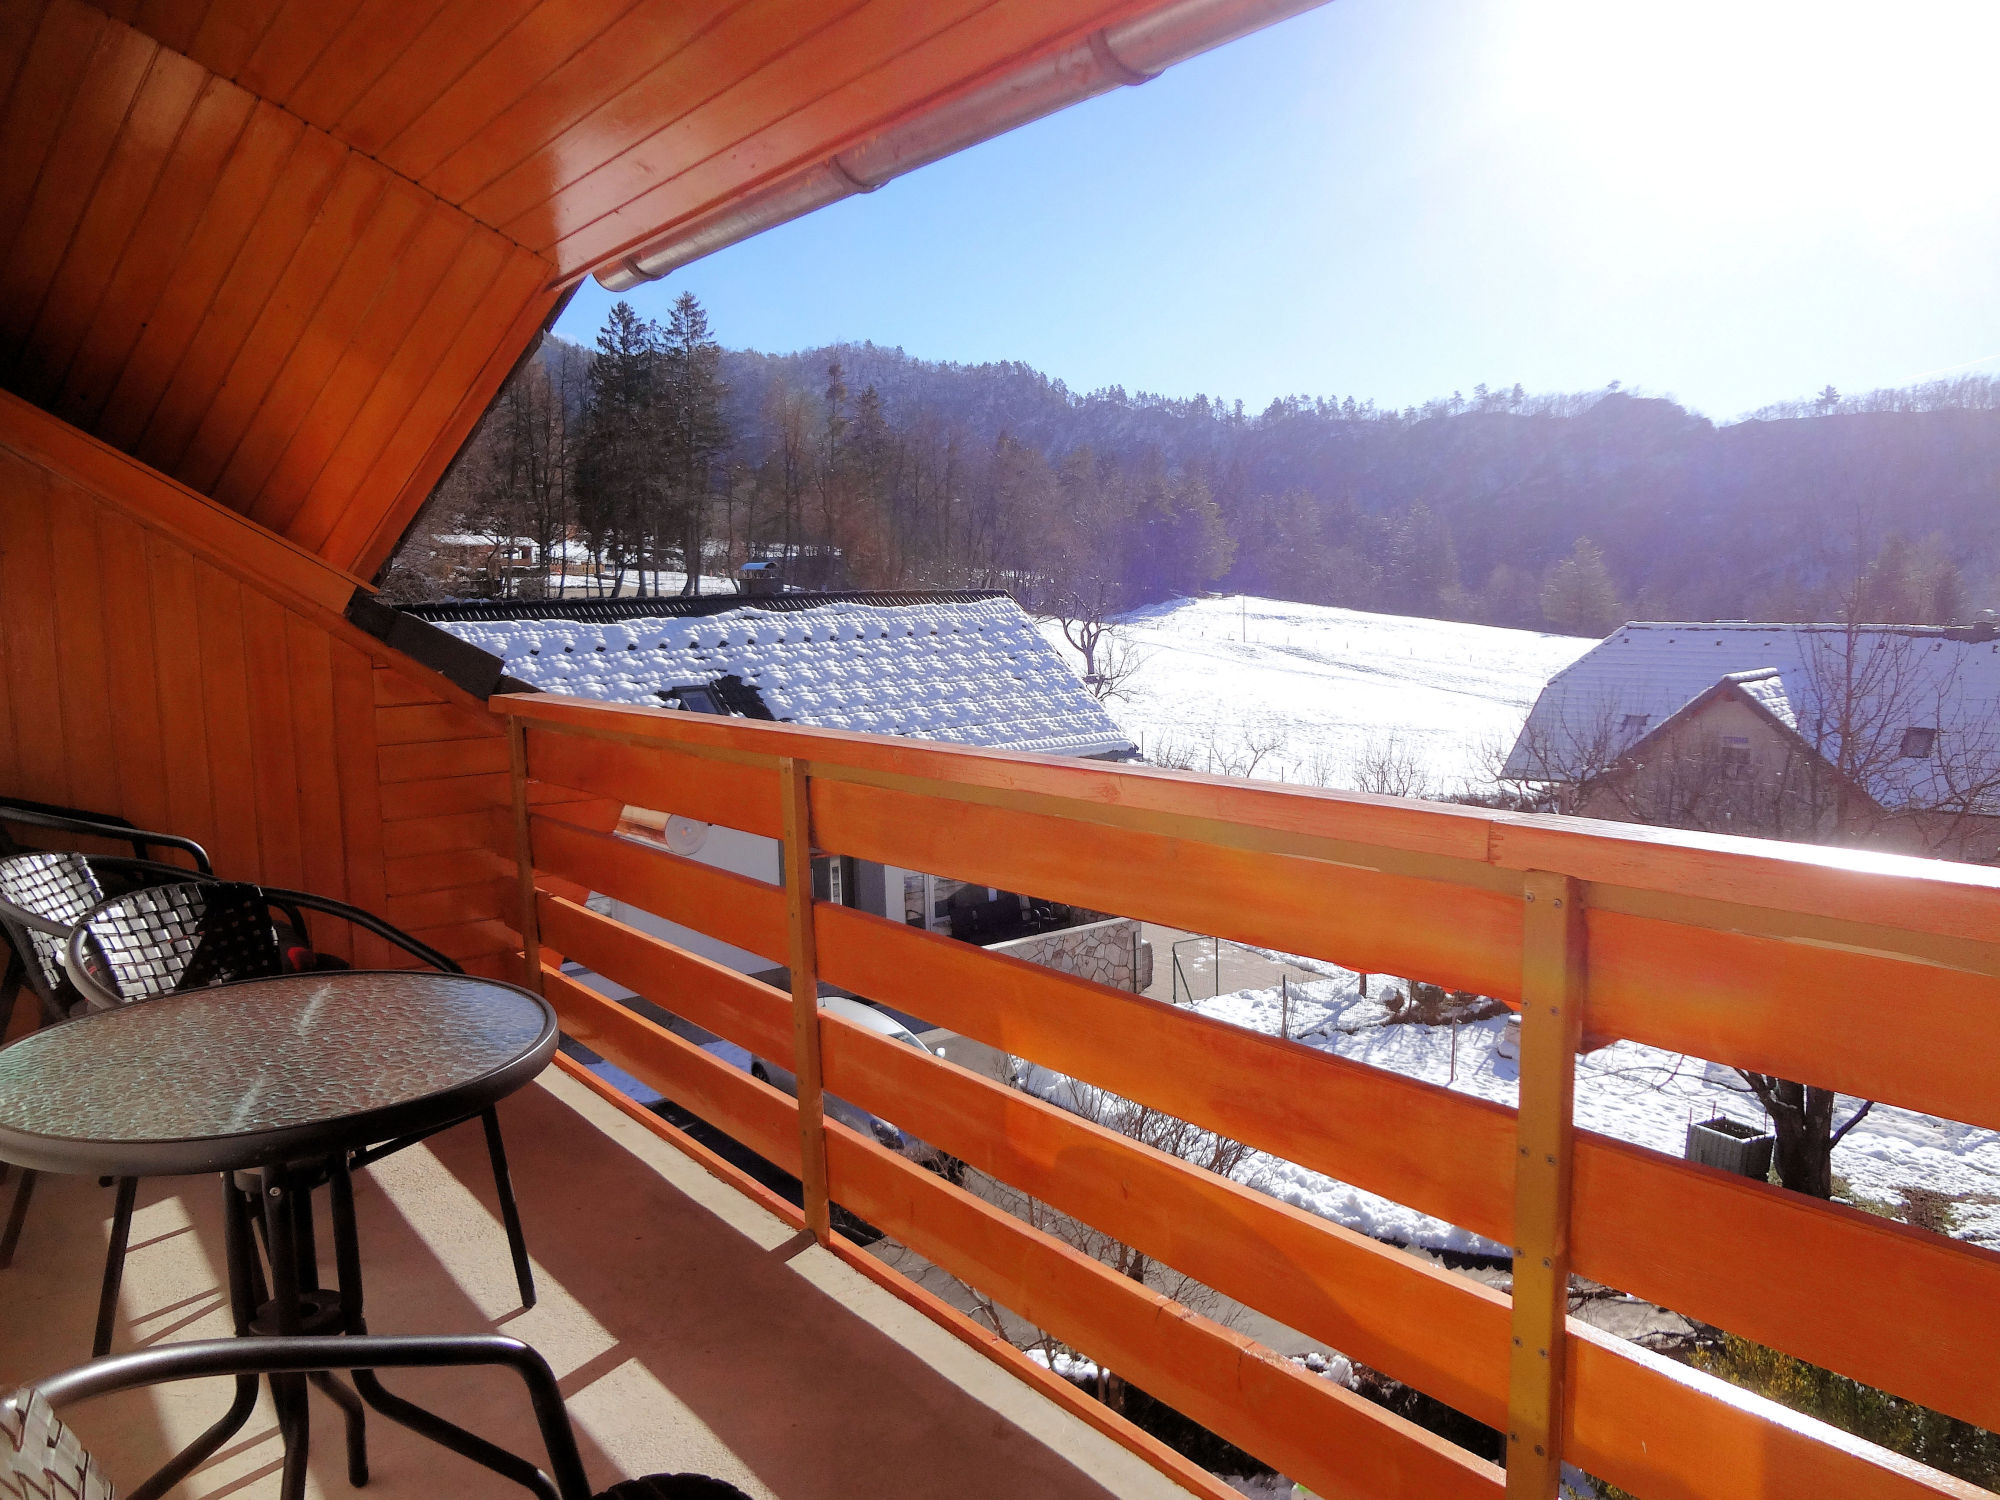 A wintry view of the snow covered pasture from the balcony of Apartments Fine Stay